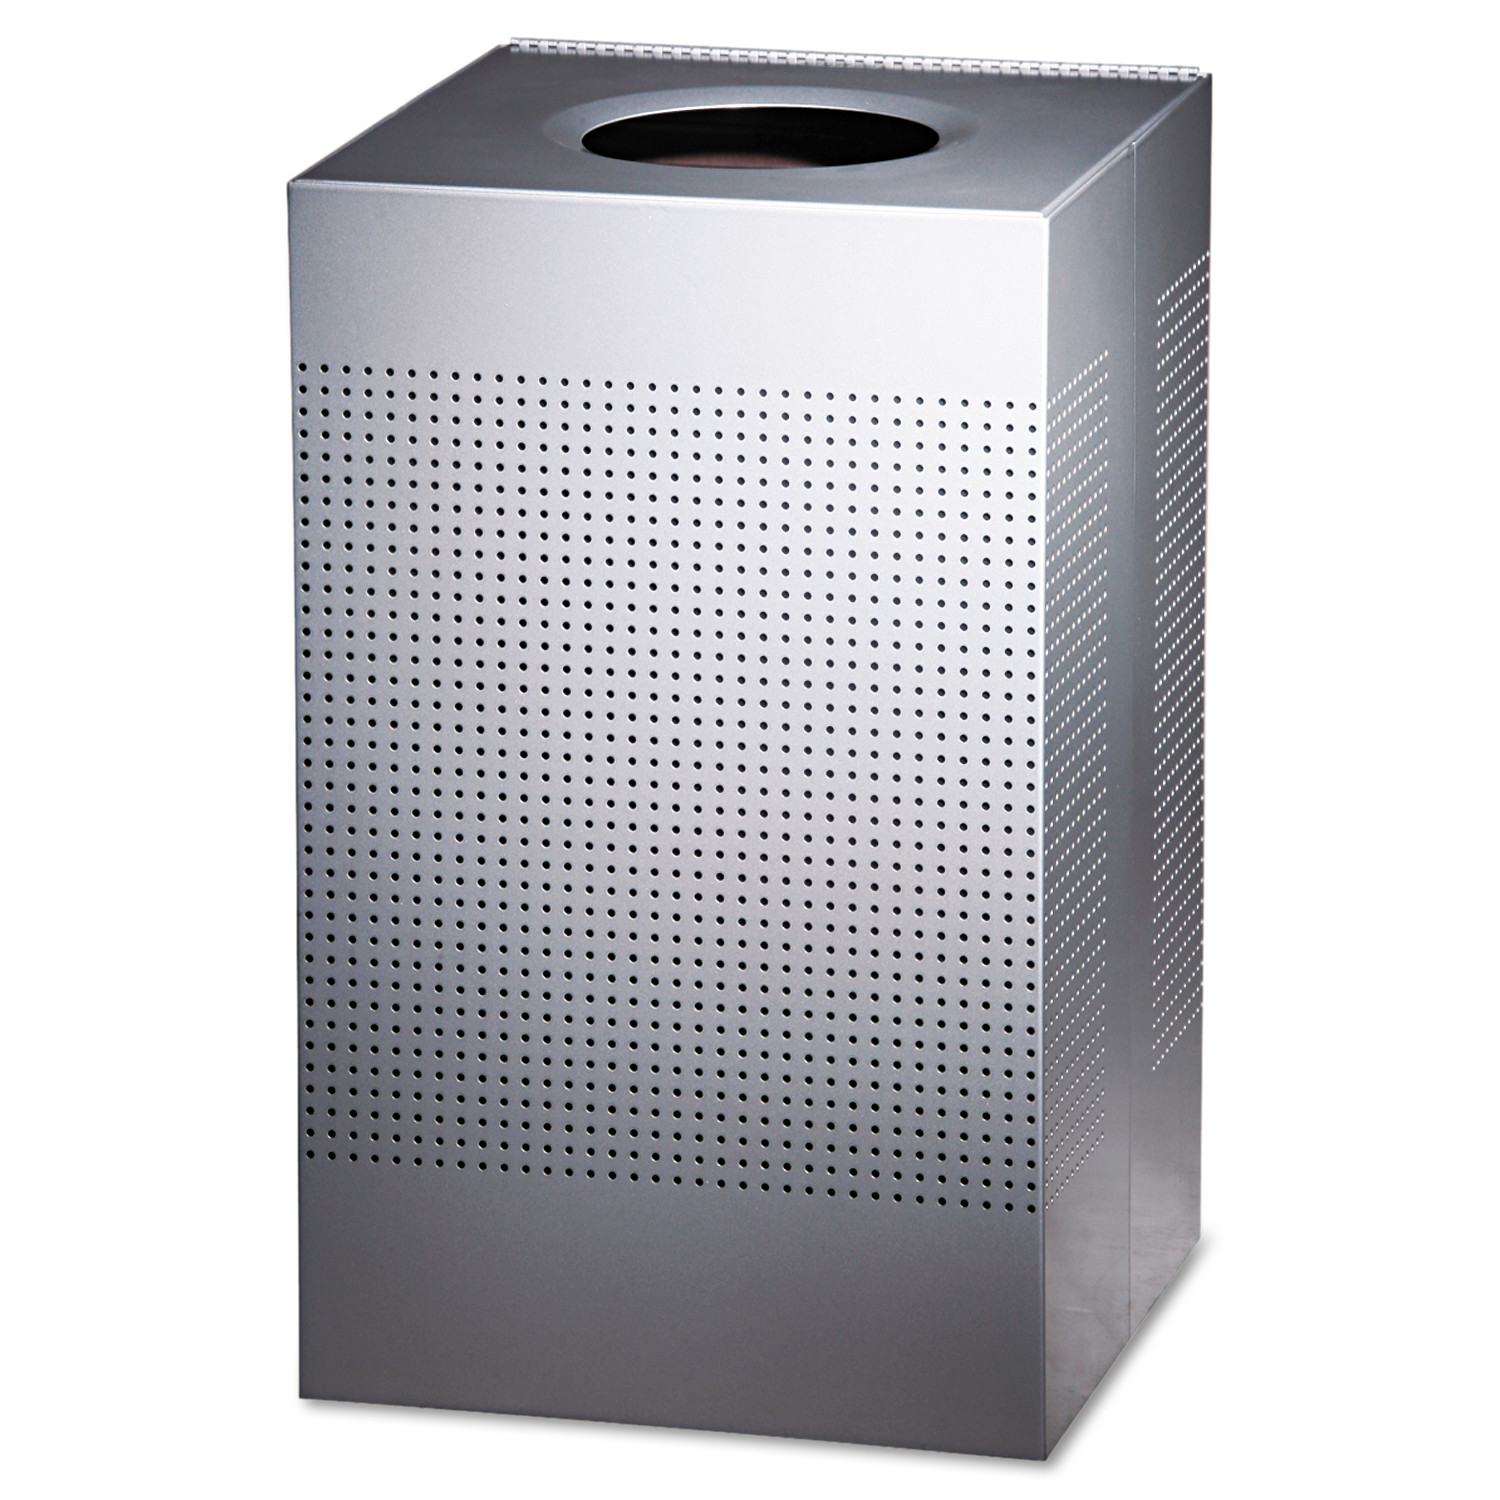 Rubbermaid Commercial Designer Line Silhouettes Steel Trash Receptacle, 29 gal